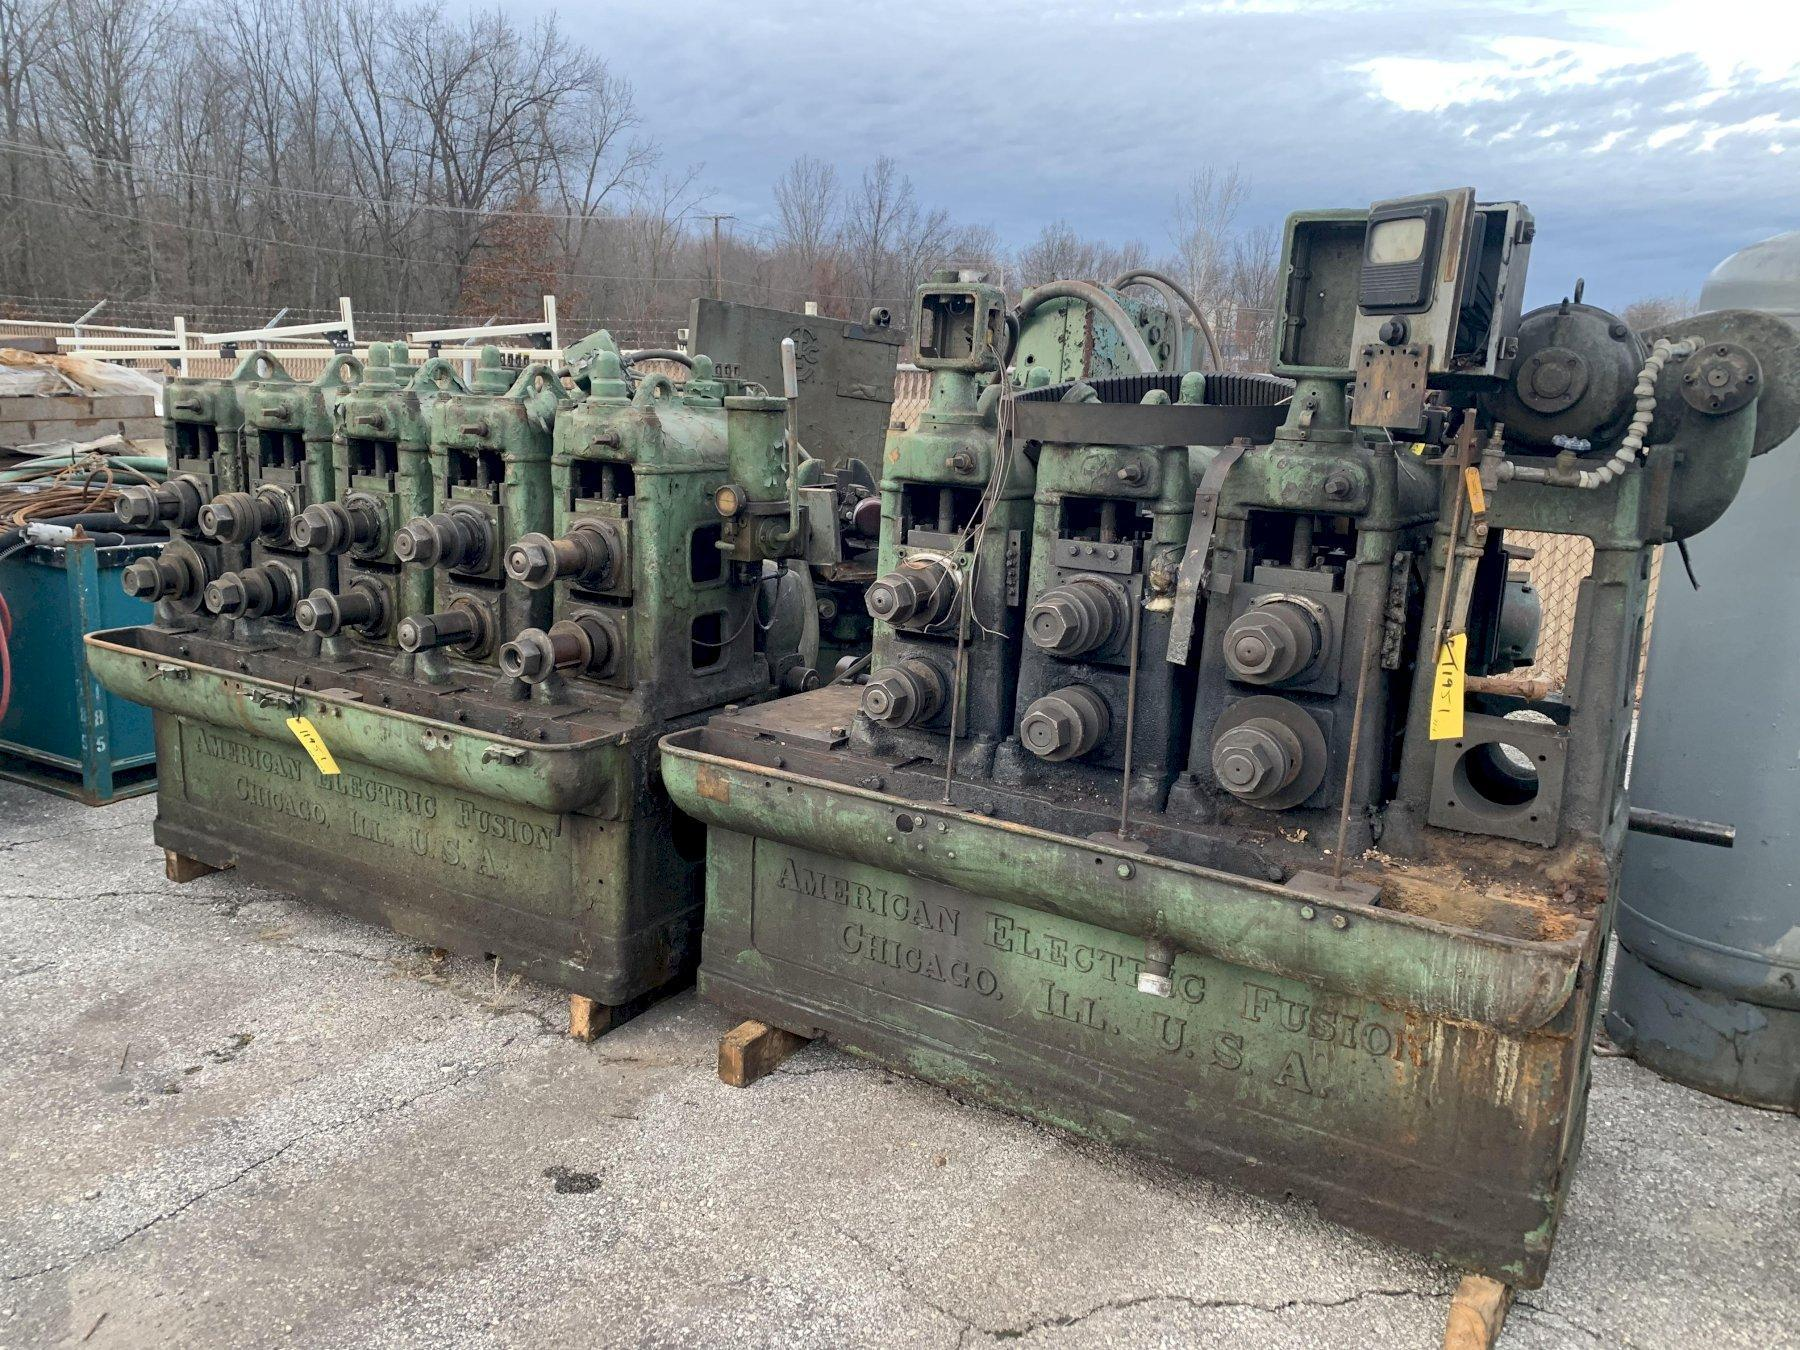 8 STAND AMERICAN ELECTRIC FUSION ROLLFORMER / TUBE MILL: STOCK #11951